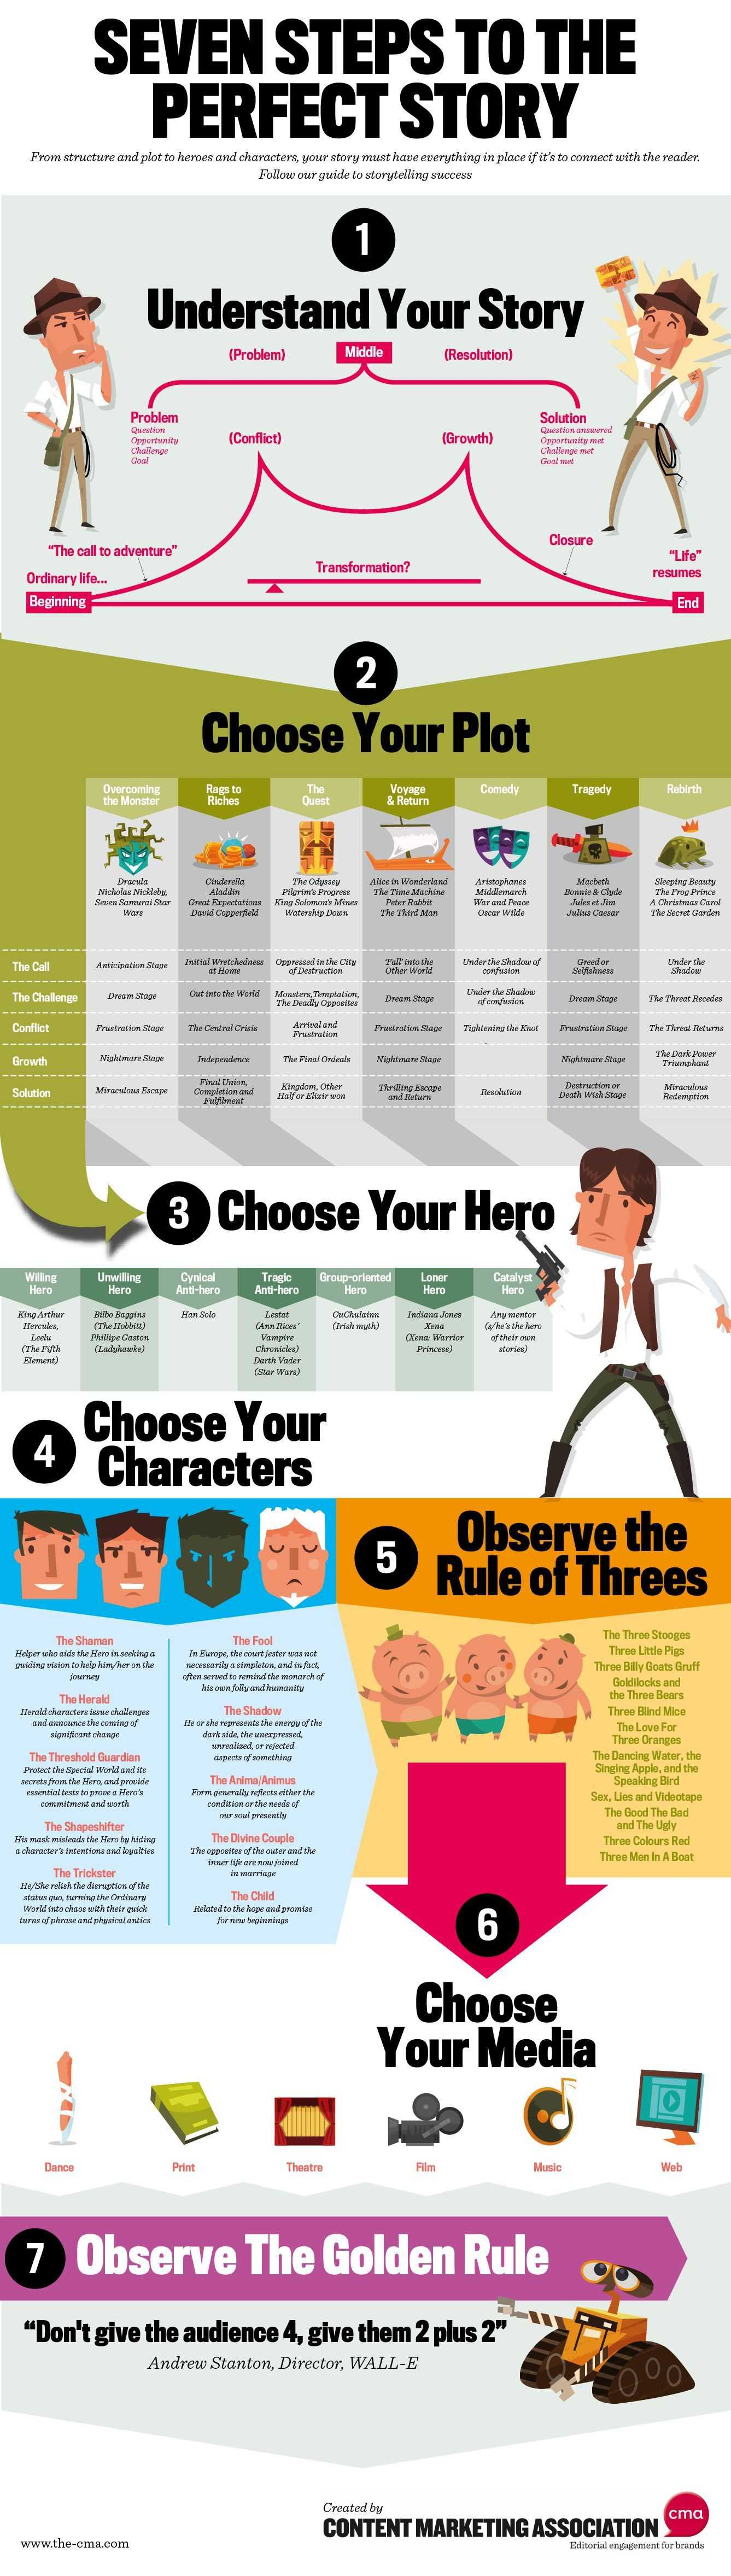 Seven Steps To The Perfect Story Infographic